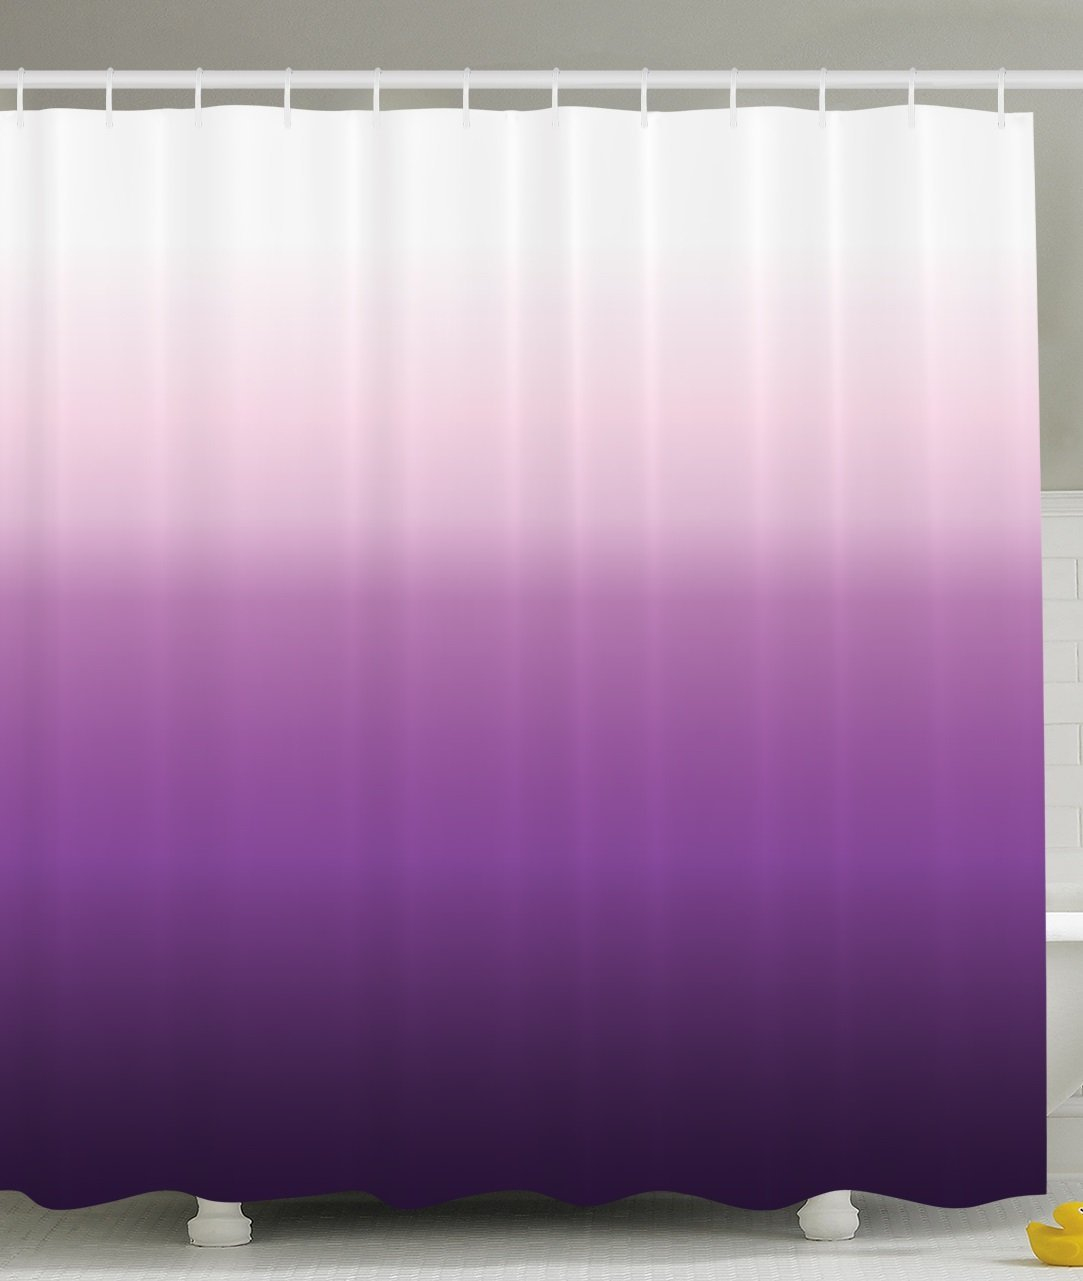 Us 13 02 43 Off Purple Shower Curtain Home Decorations Art Bathroom Decor Long Polyester Fabric Set Ombre Colorful Design White Purple In Shower